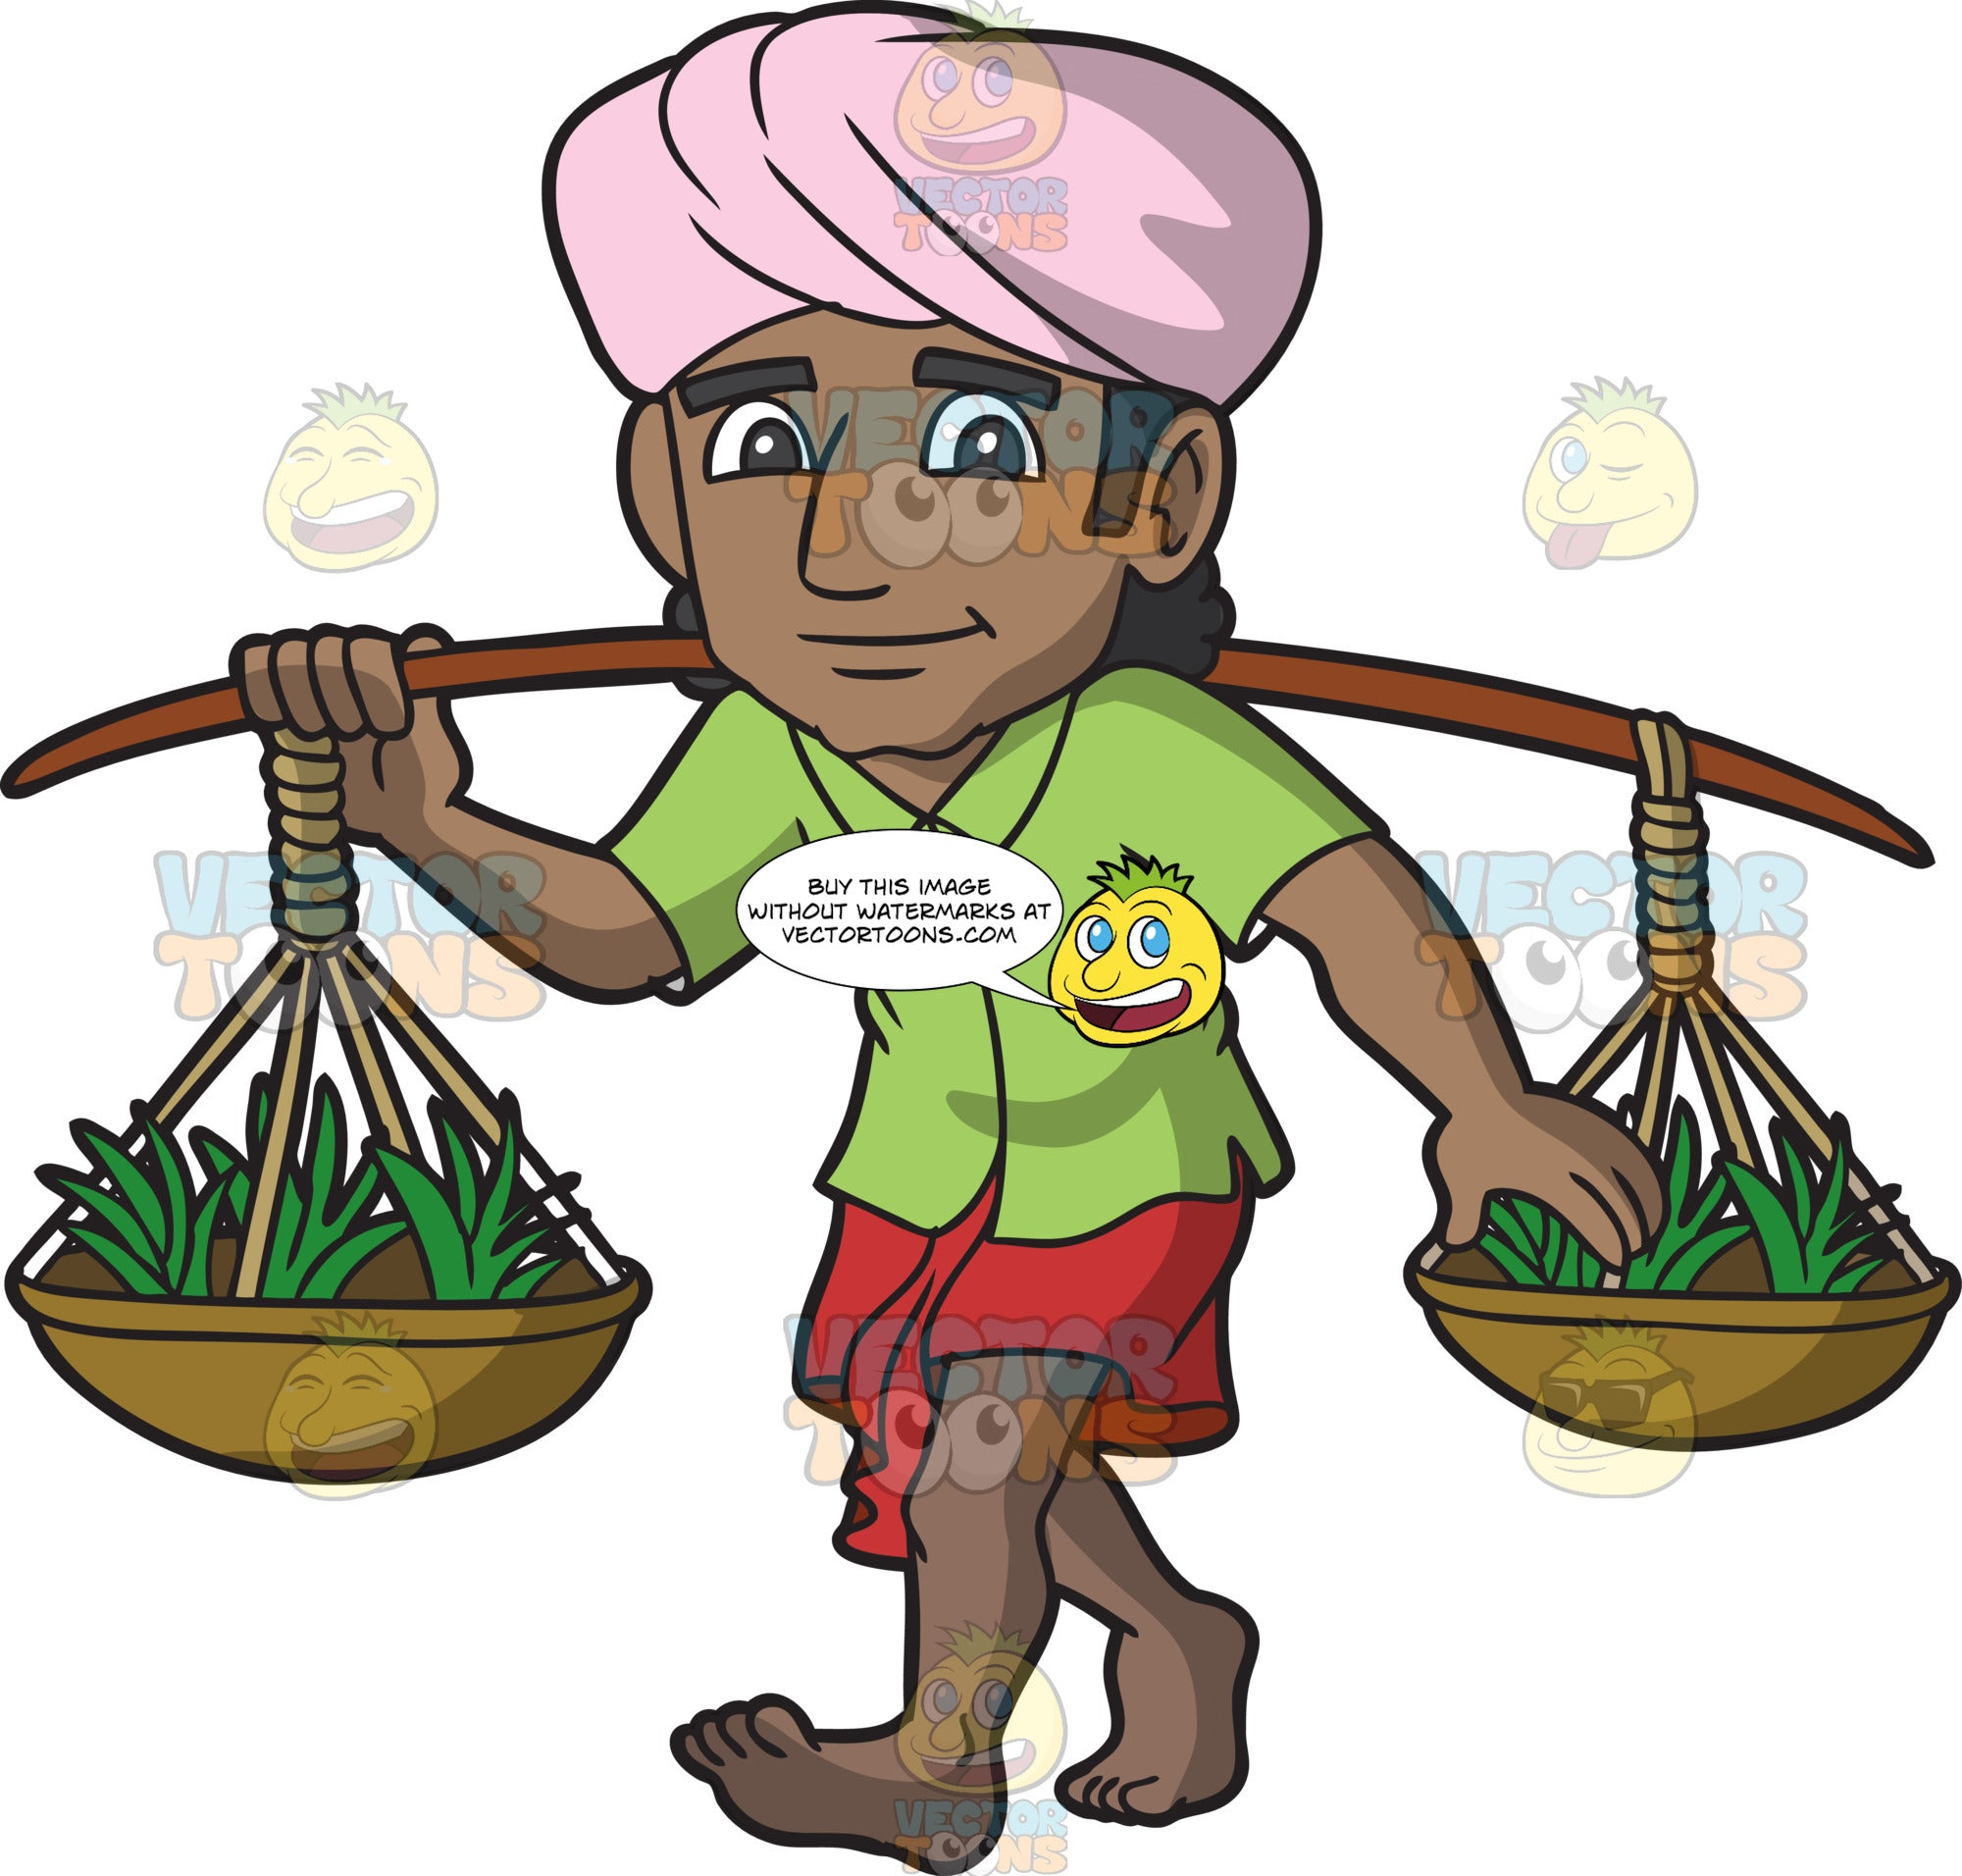 An Indian Merchant Selling Plants